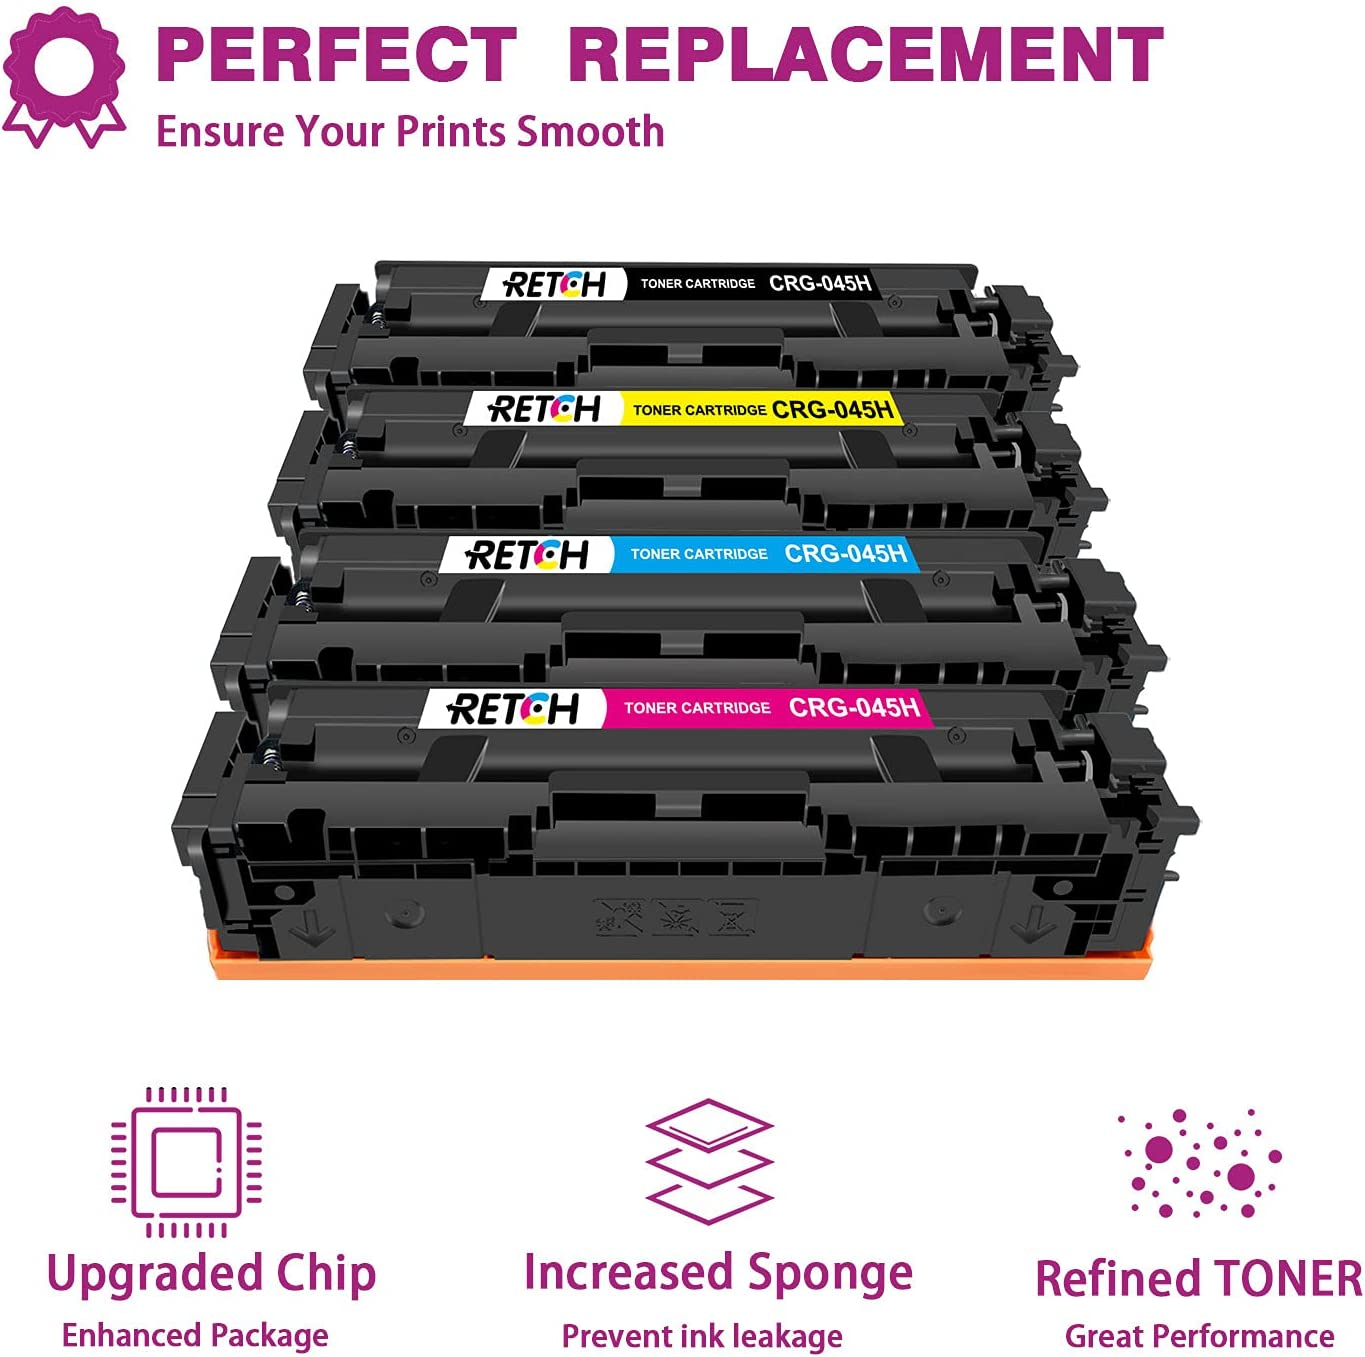 RETCH Compatible Toner Cartridges 045H Tray Replacement for Canon 045 045H CRG-045H for Canon Color ImageCLASS MF634Cdw MF634 634C MF632Cdw MF632C LBP612Cdw Printer (Black, Cyan, Magenta, Yellow)